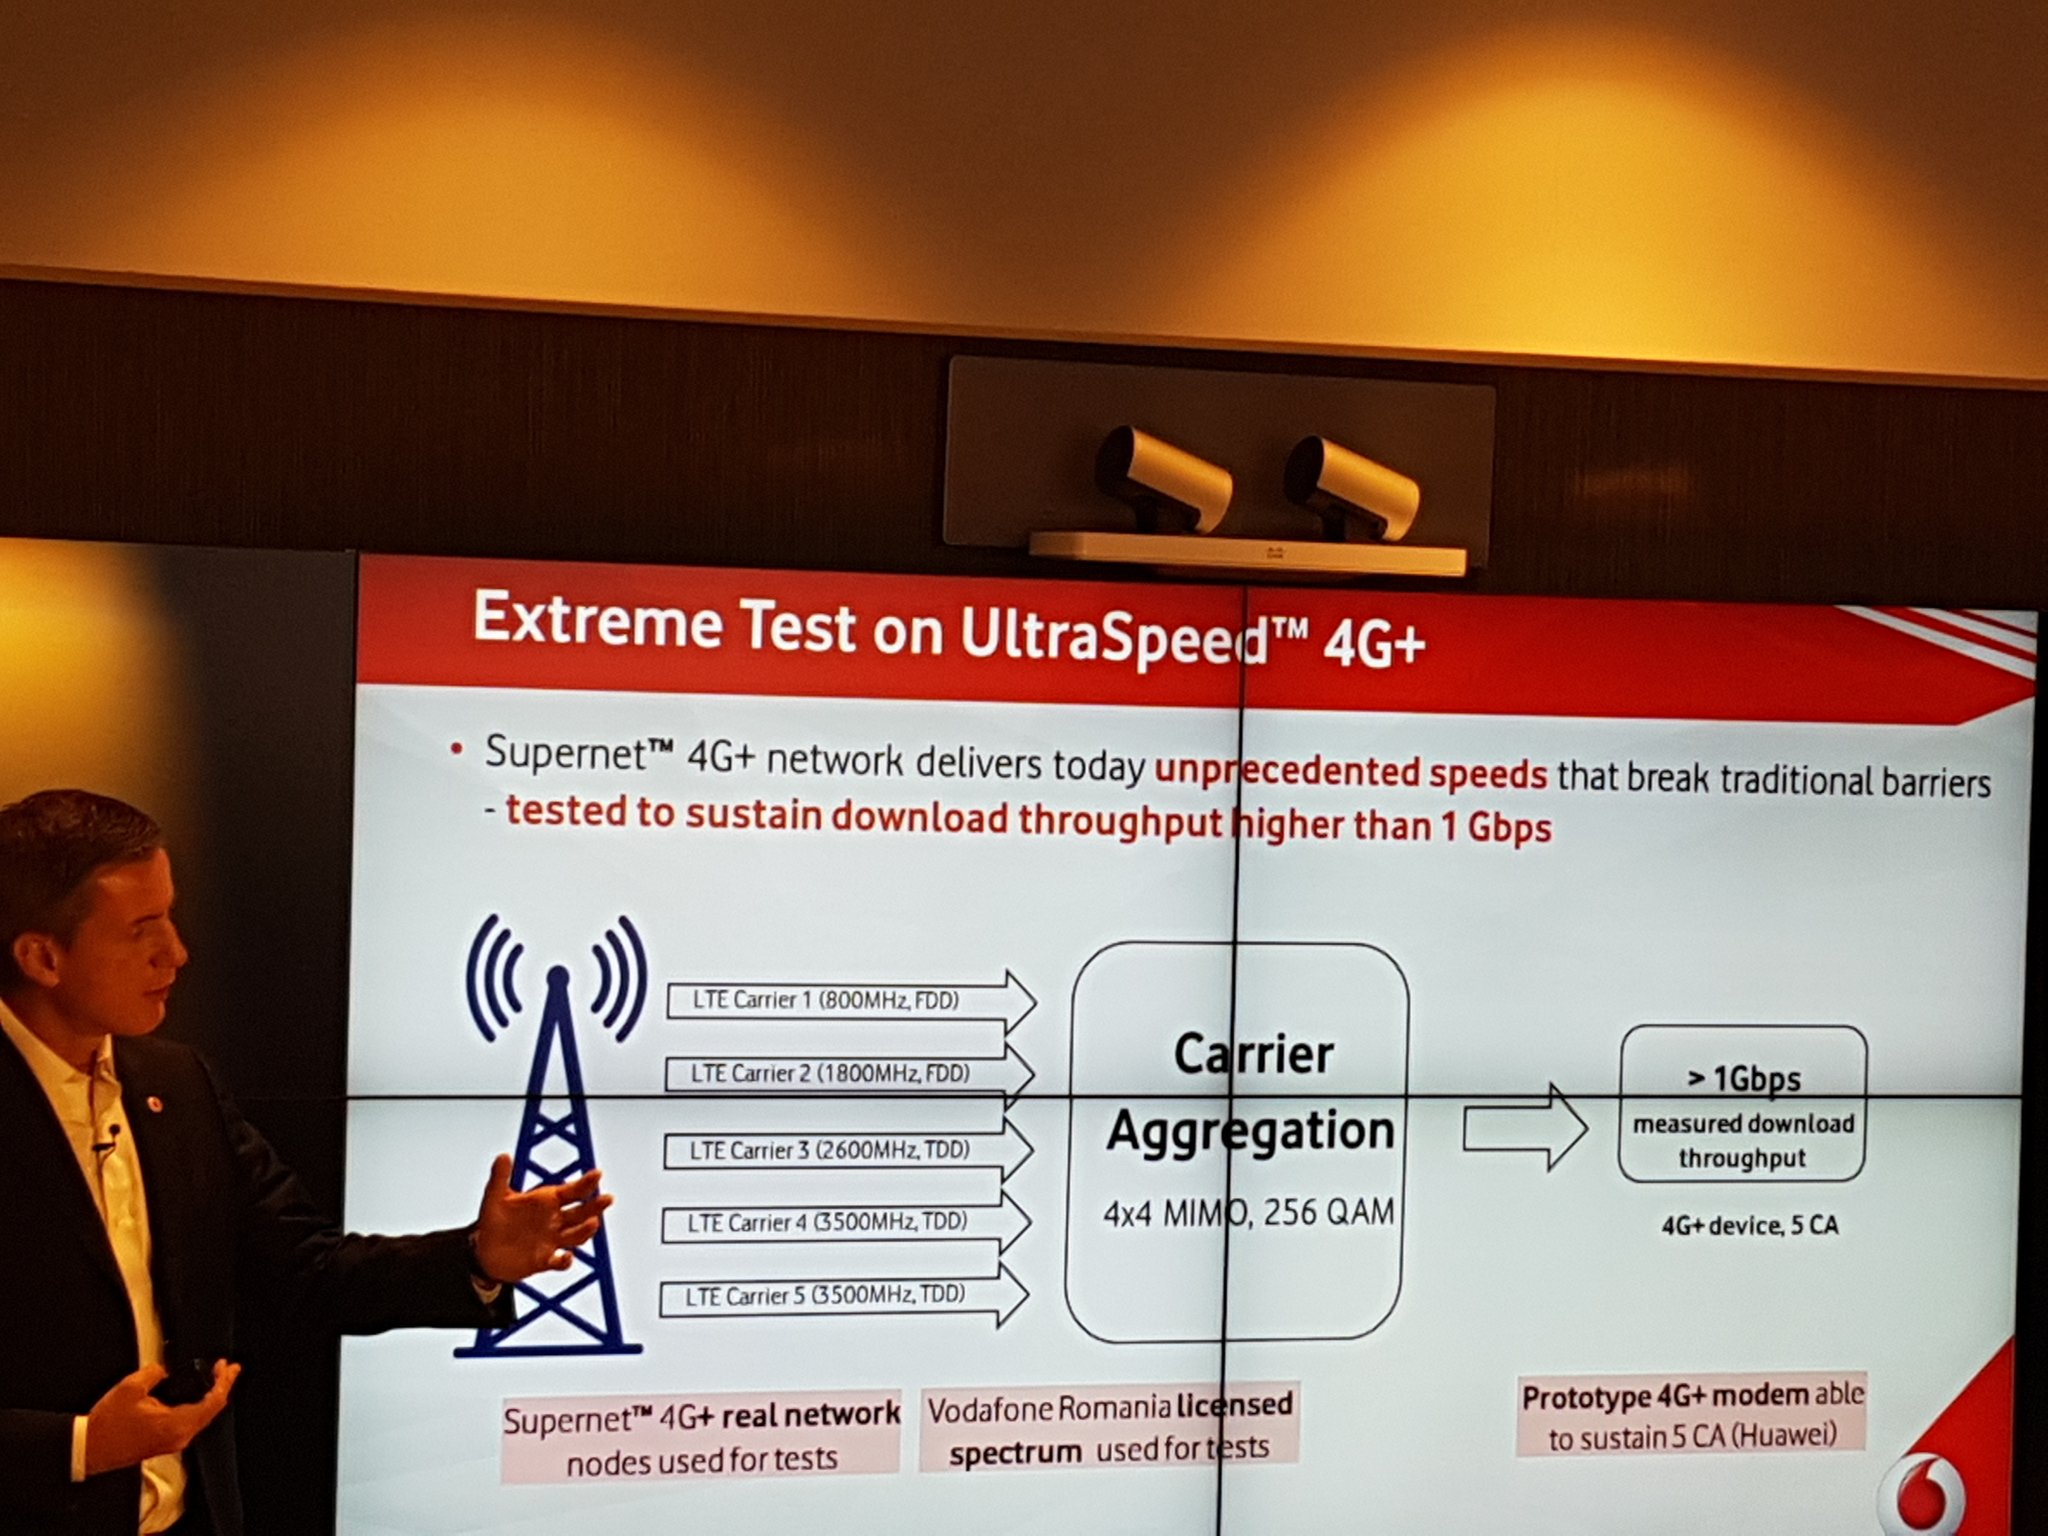 ultraspeed 4g+ 1 gbps vodafone